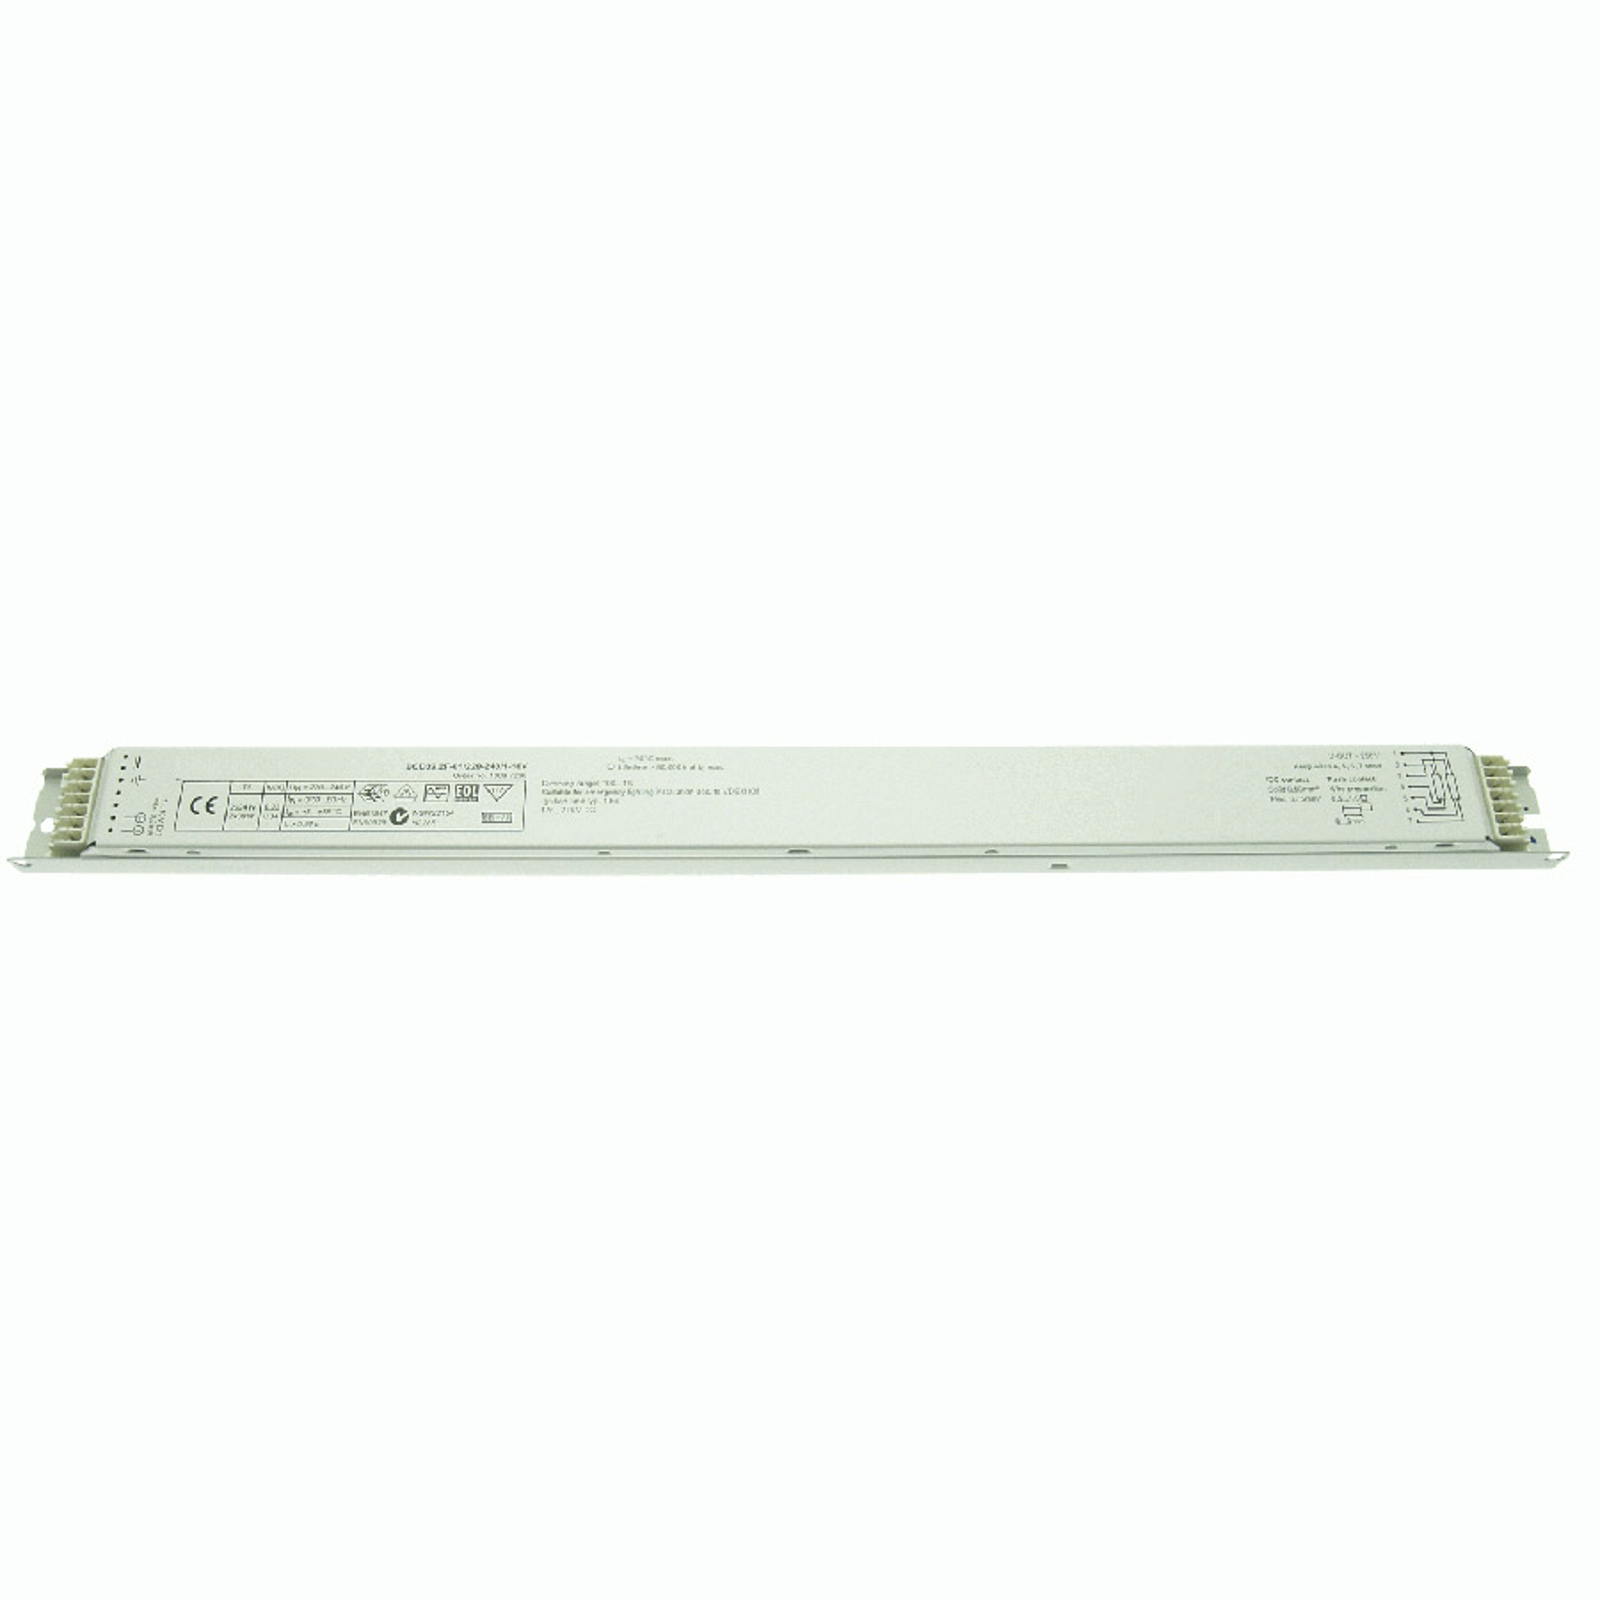 Dimmable EB 2x24/39W T5 BCD39.2F-01/220-240/1-10V_4519075_1